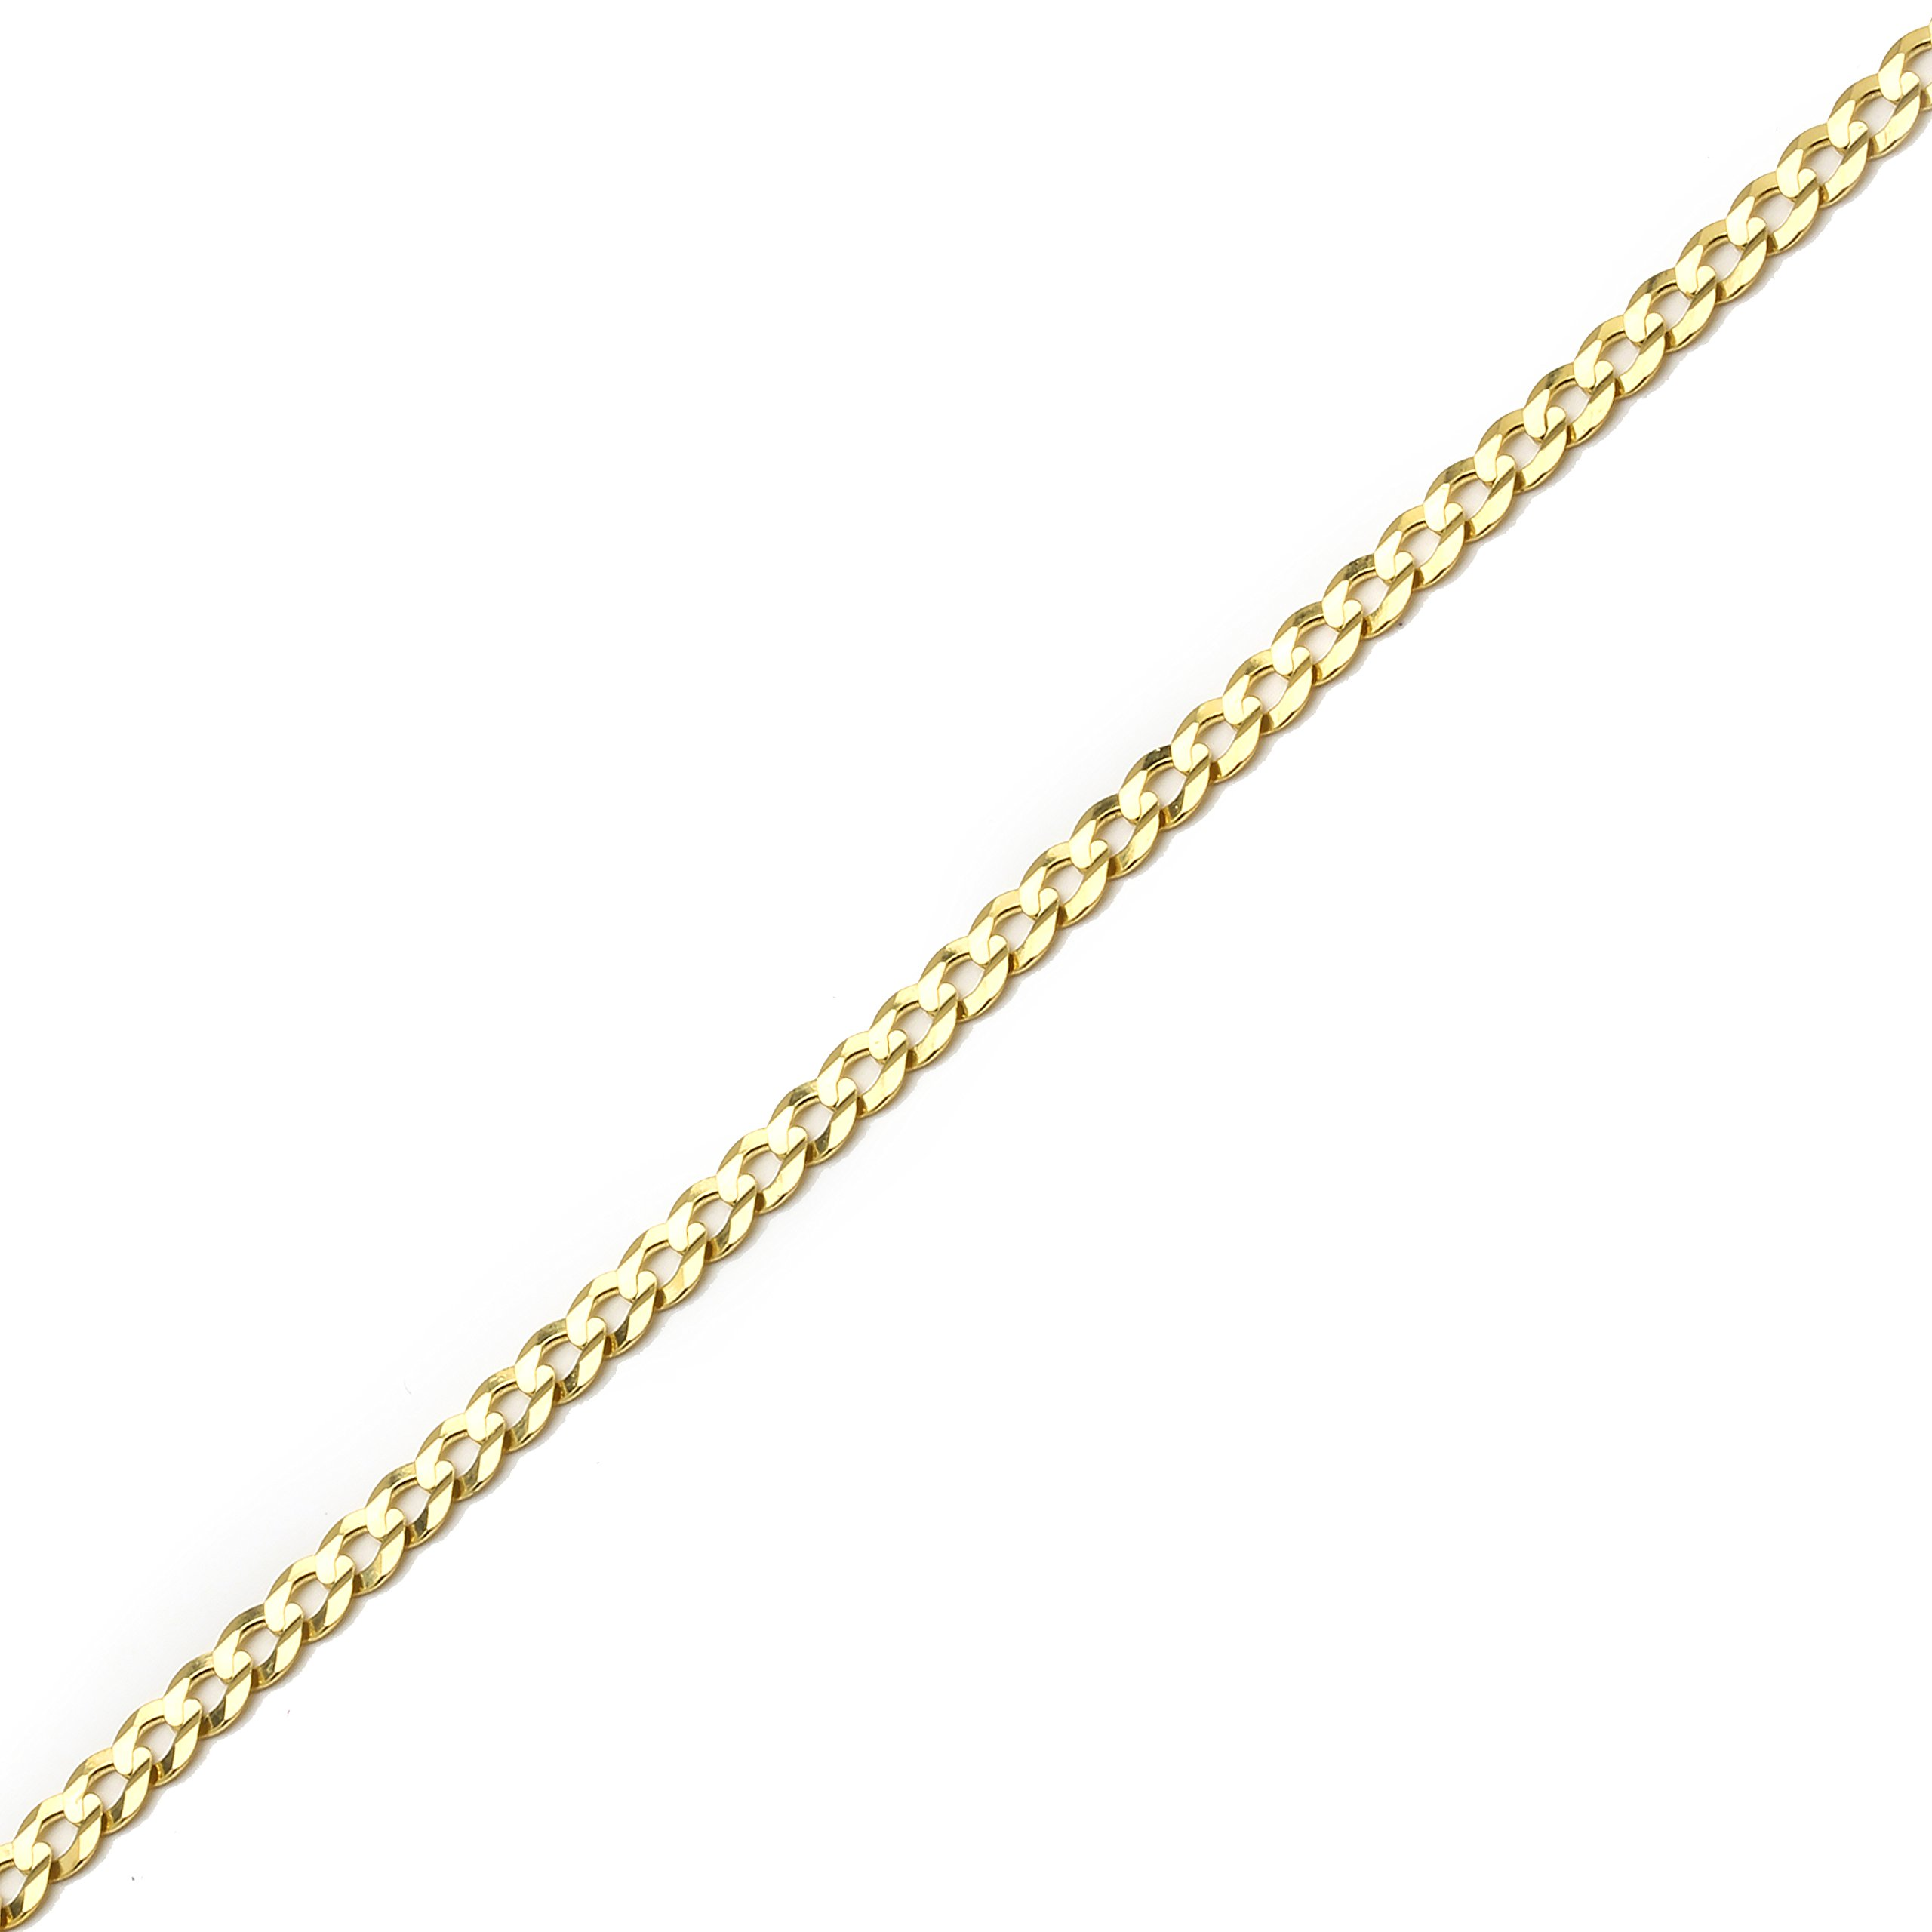 10 Inch 10k Yellow Gold Curb Cuban Chain Ankle Bracelet Anklet for Women and Girls, 0.16 Inch (4mm) by SL Gold Imports (Image #3)